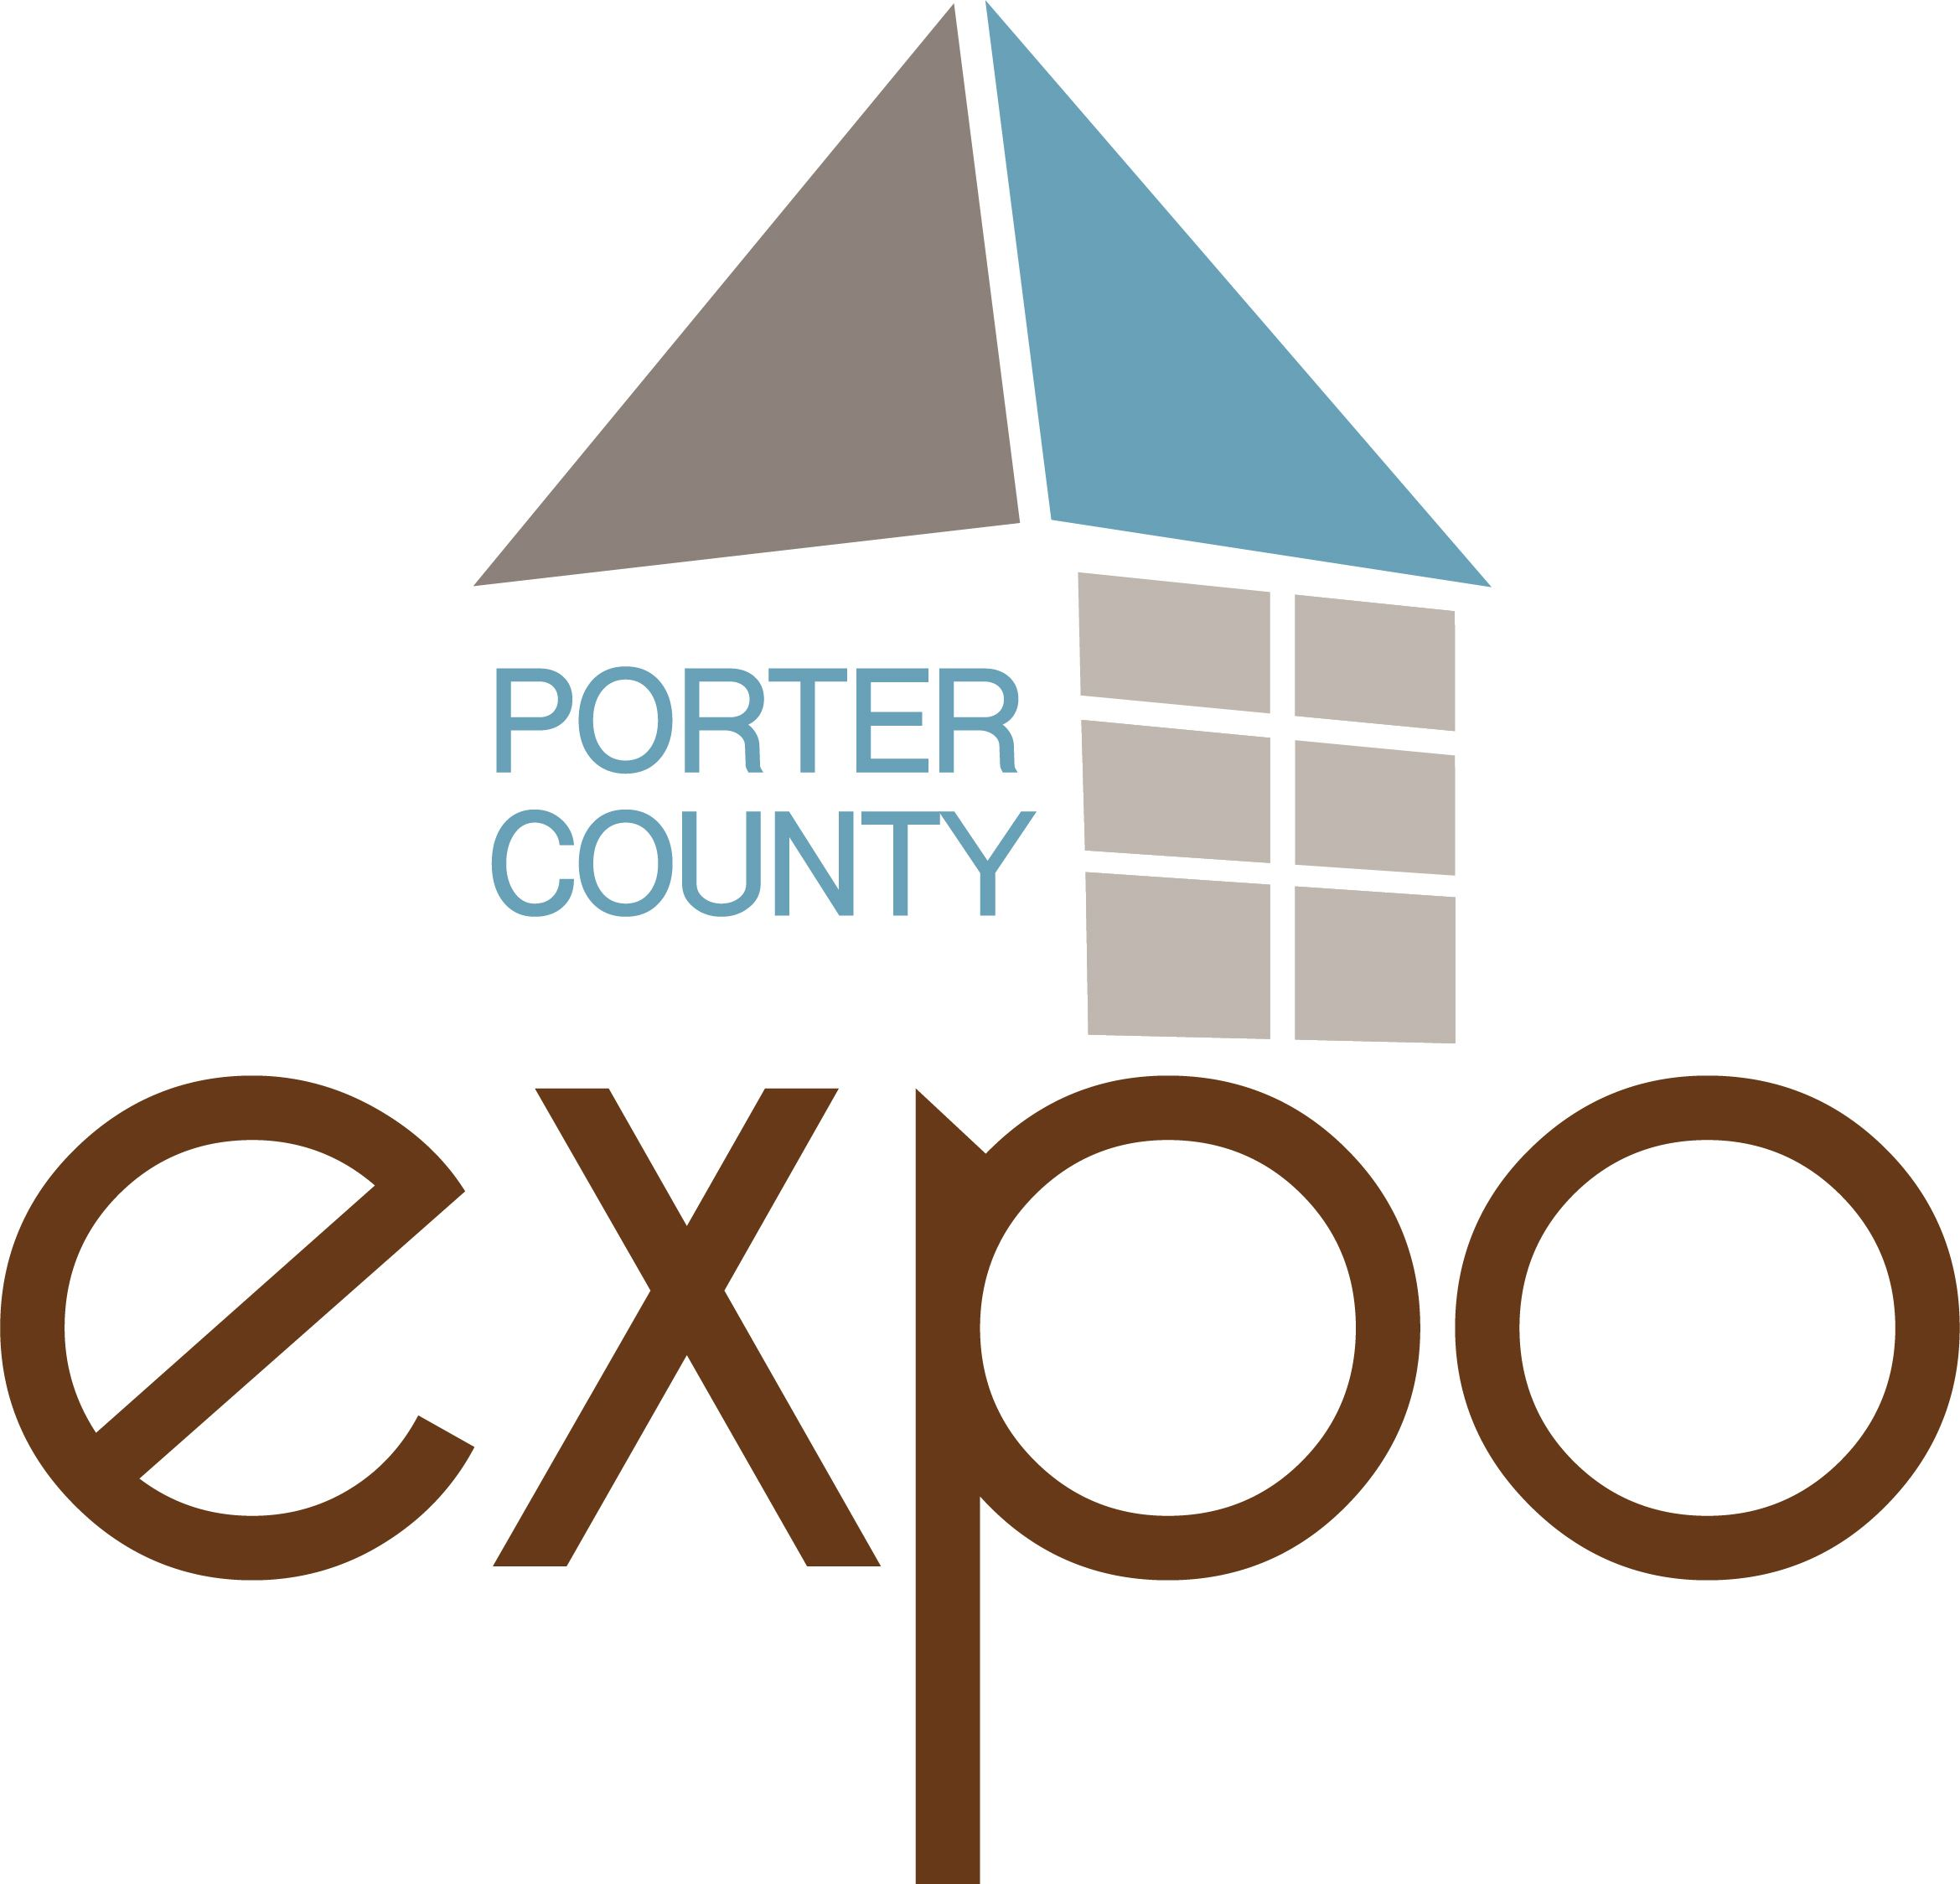 CLICK HERE for upcoming events at the Porter County Expo